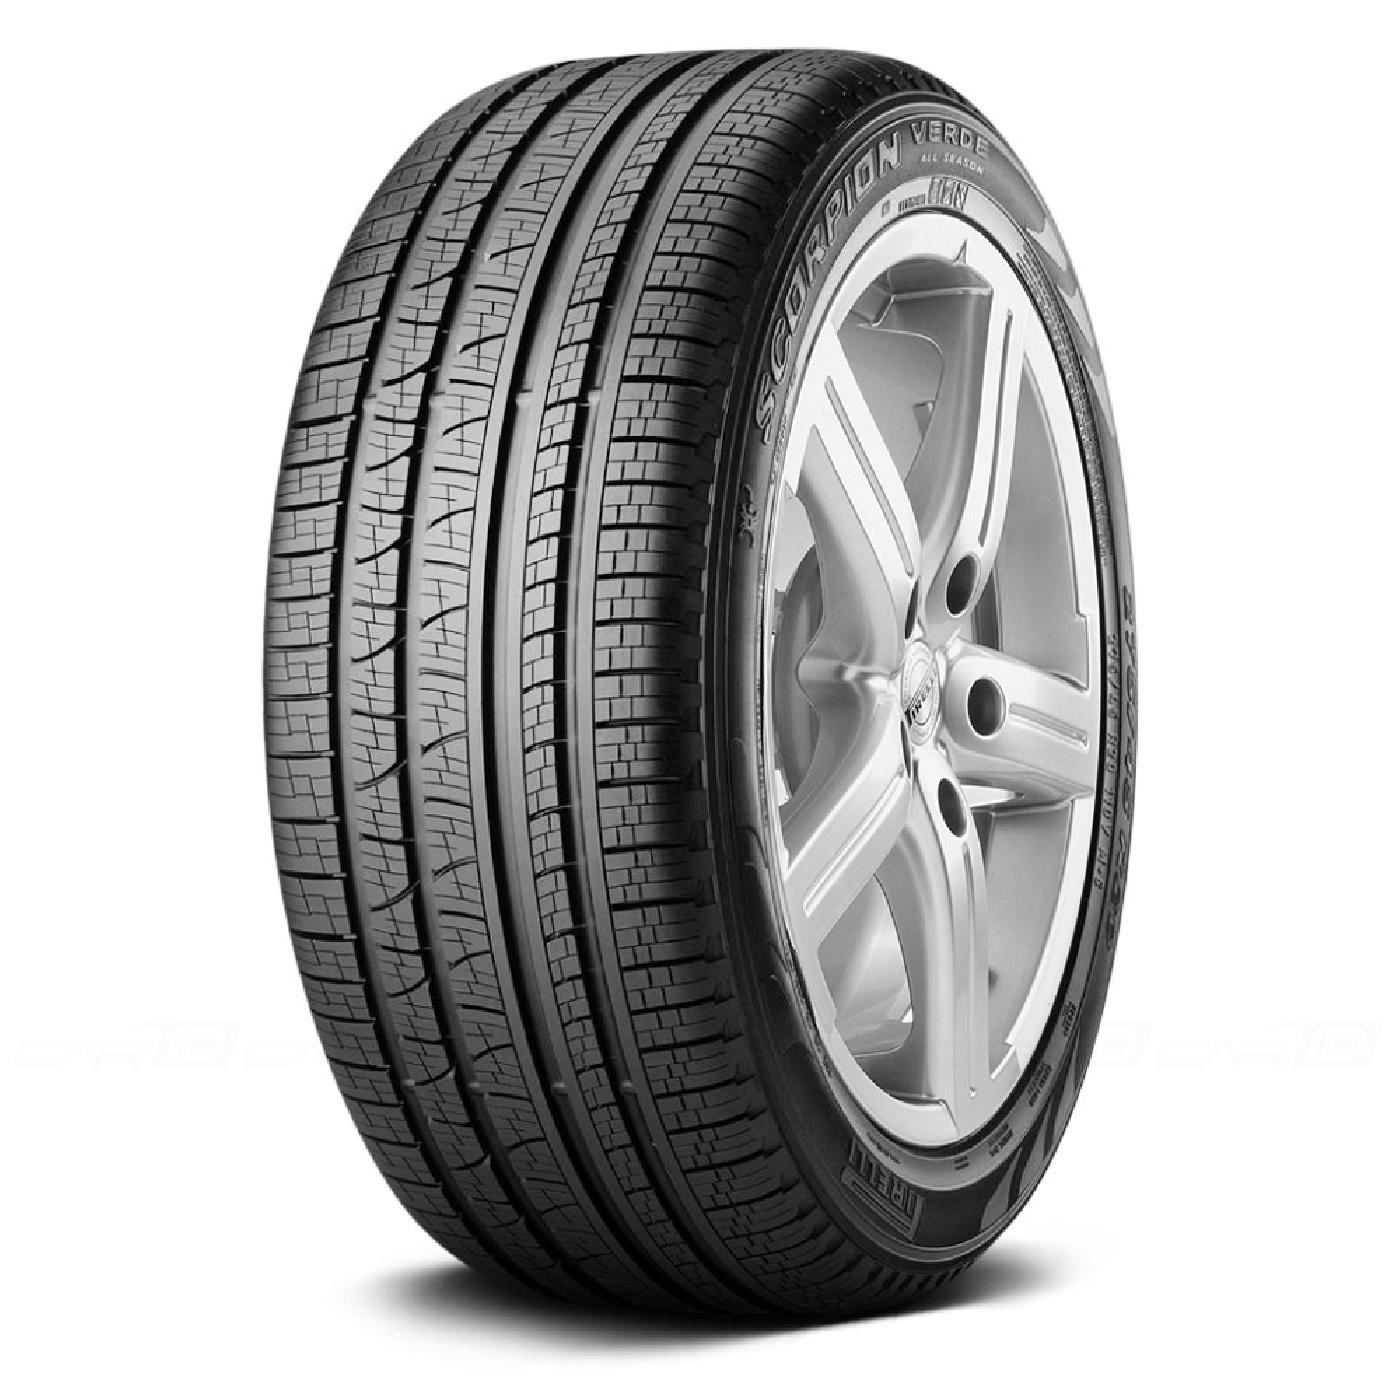 PIRELLI SCORPION VERDE ALL SEASON 255/55 R19 111V